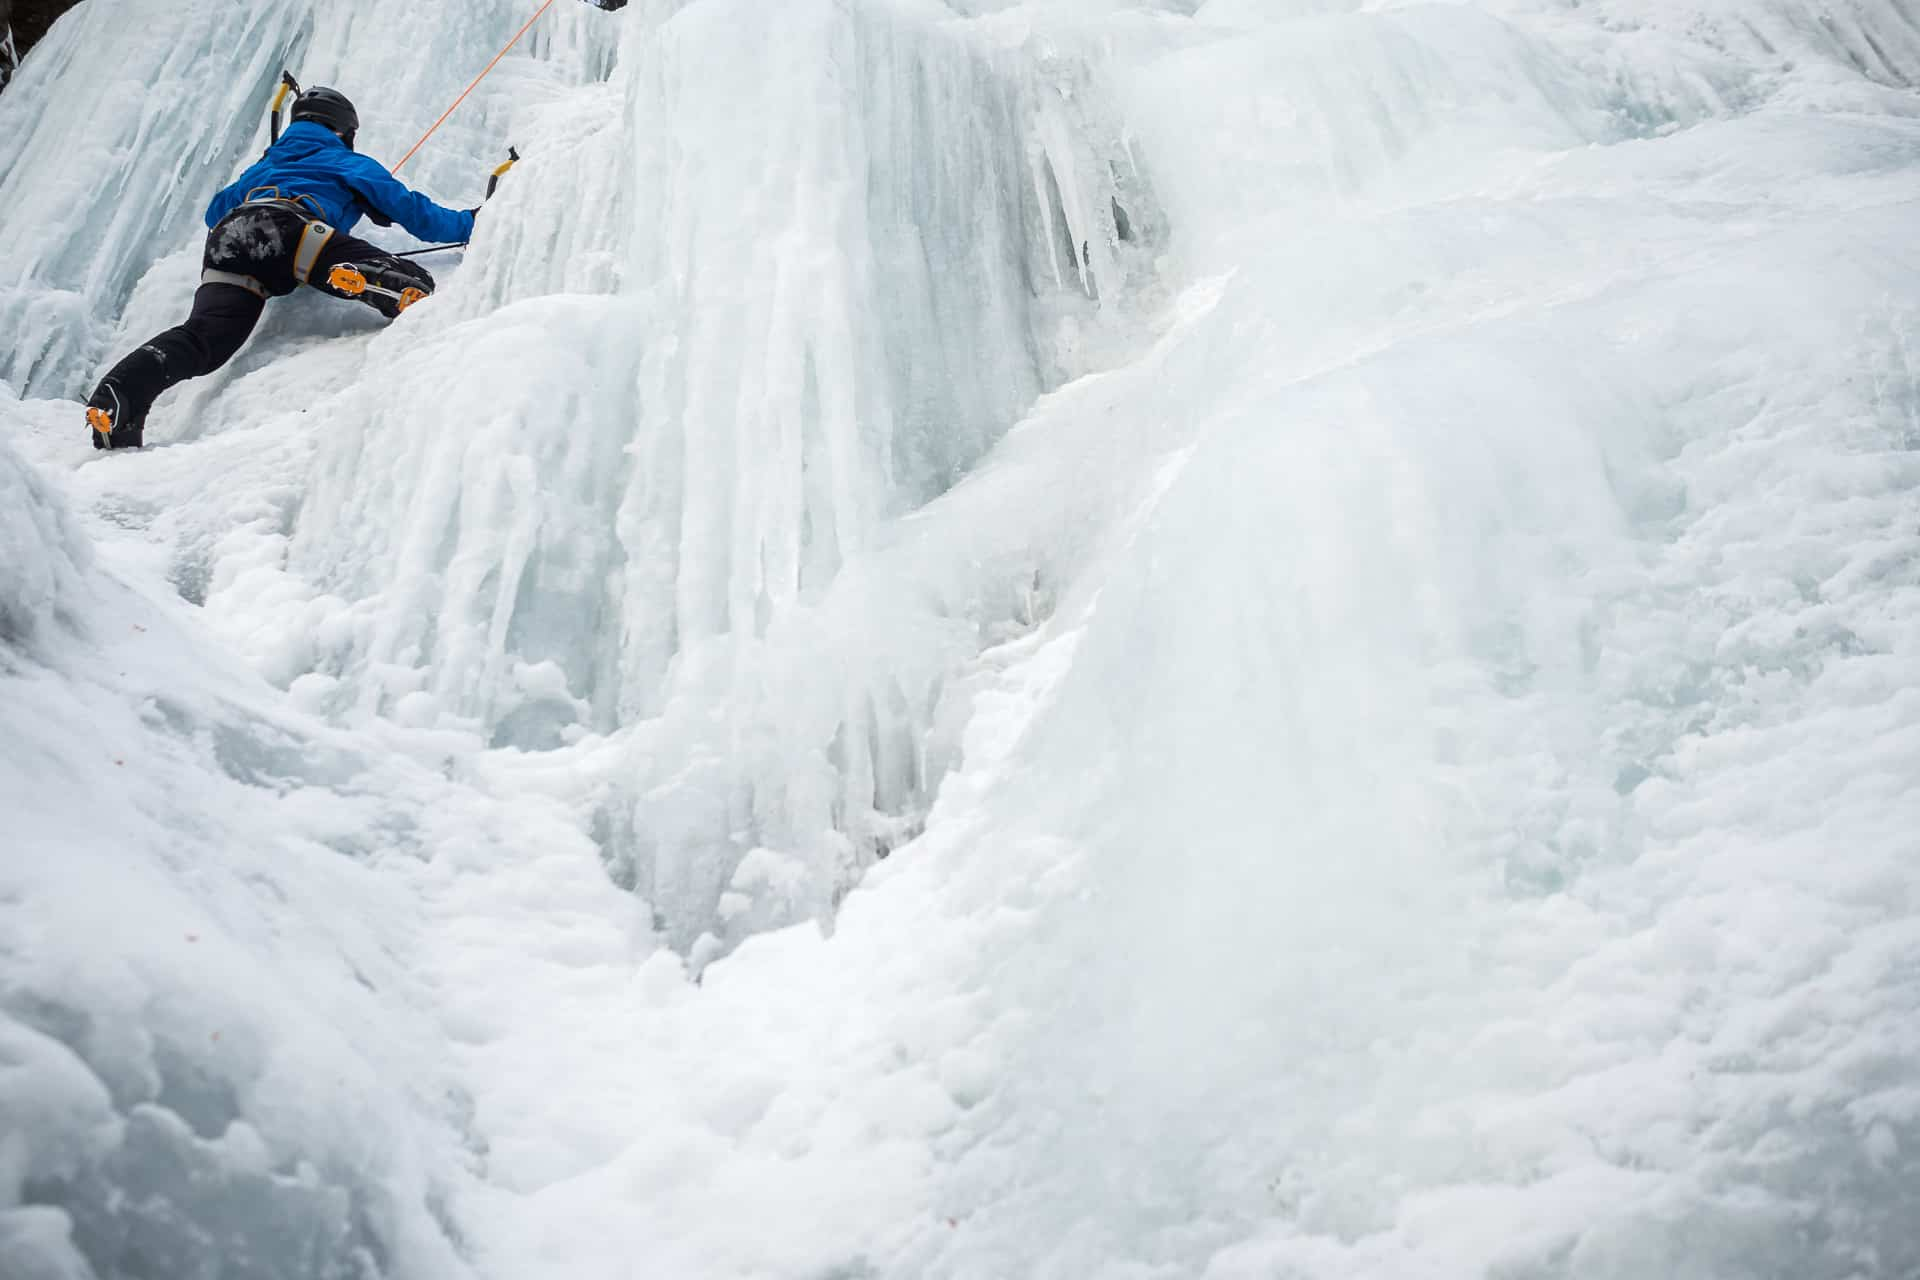 A man ice climbing on a waterfall